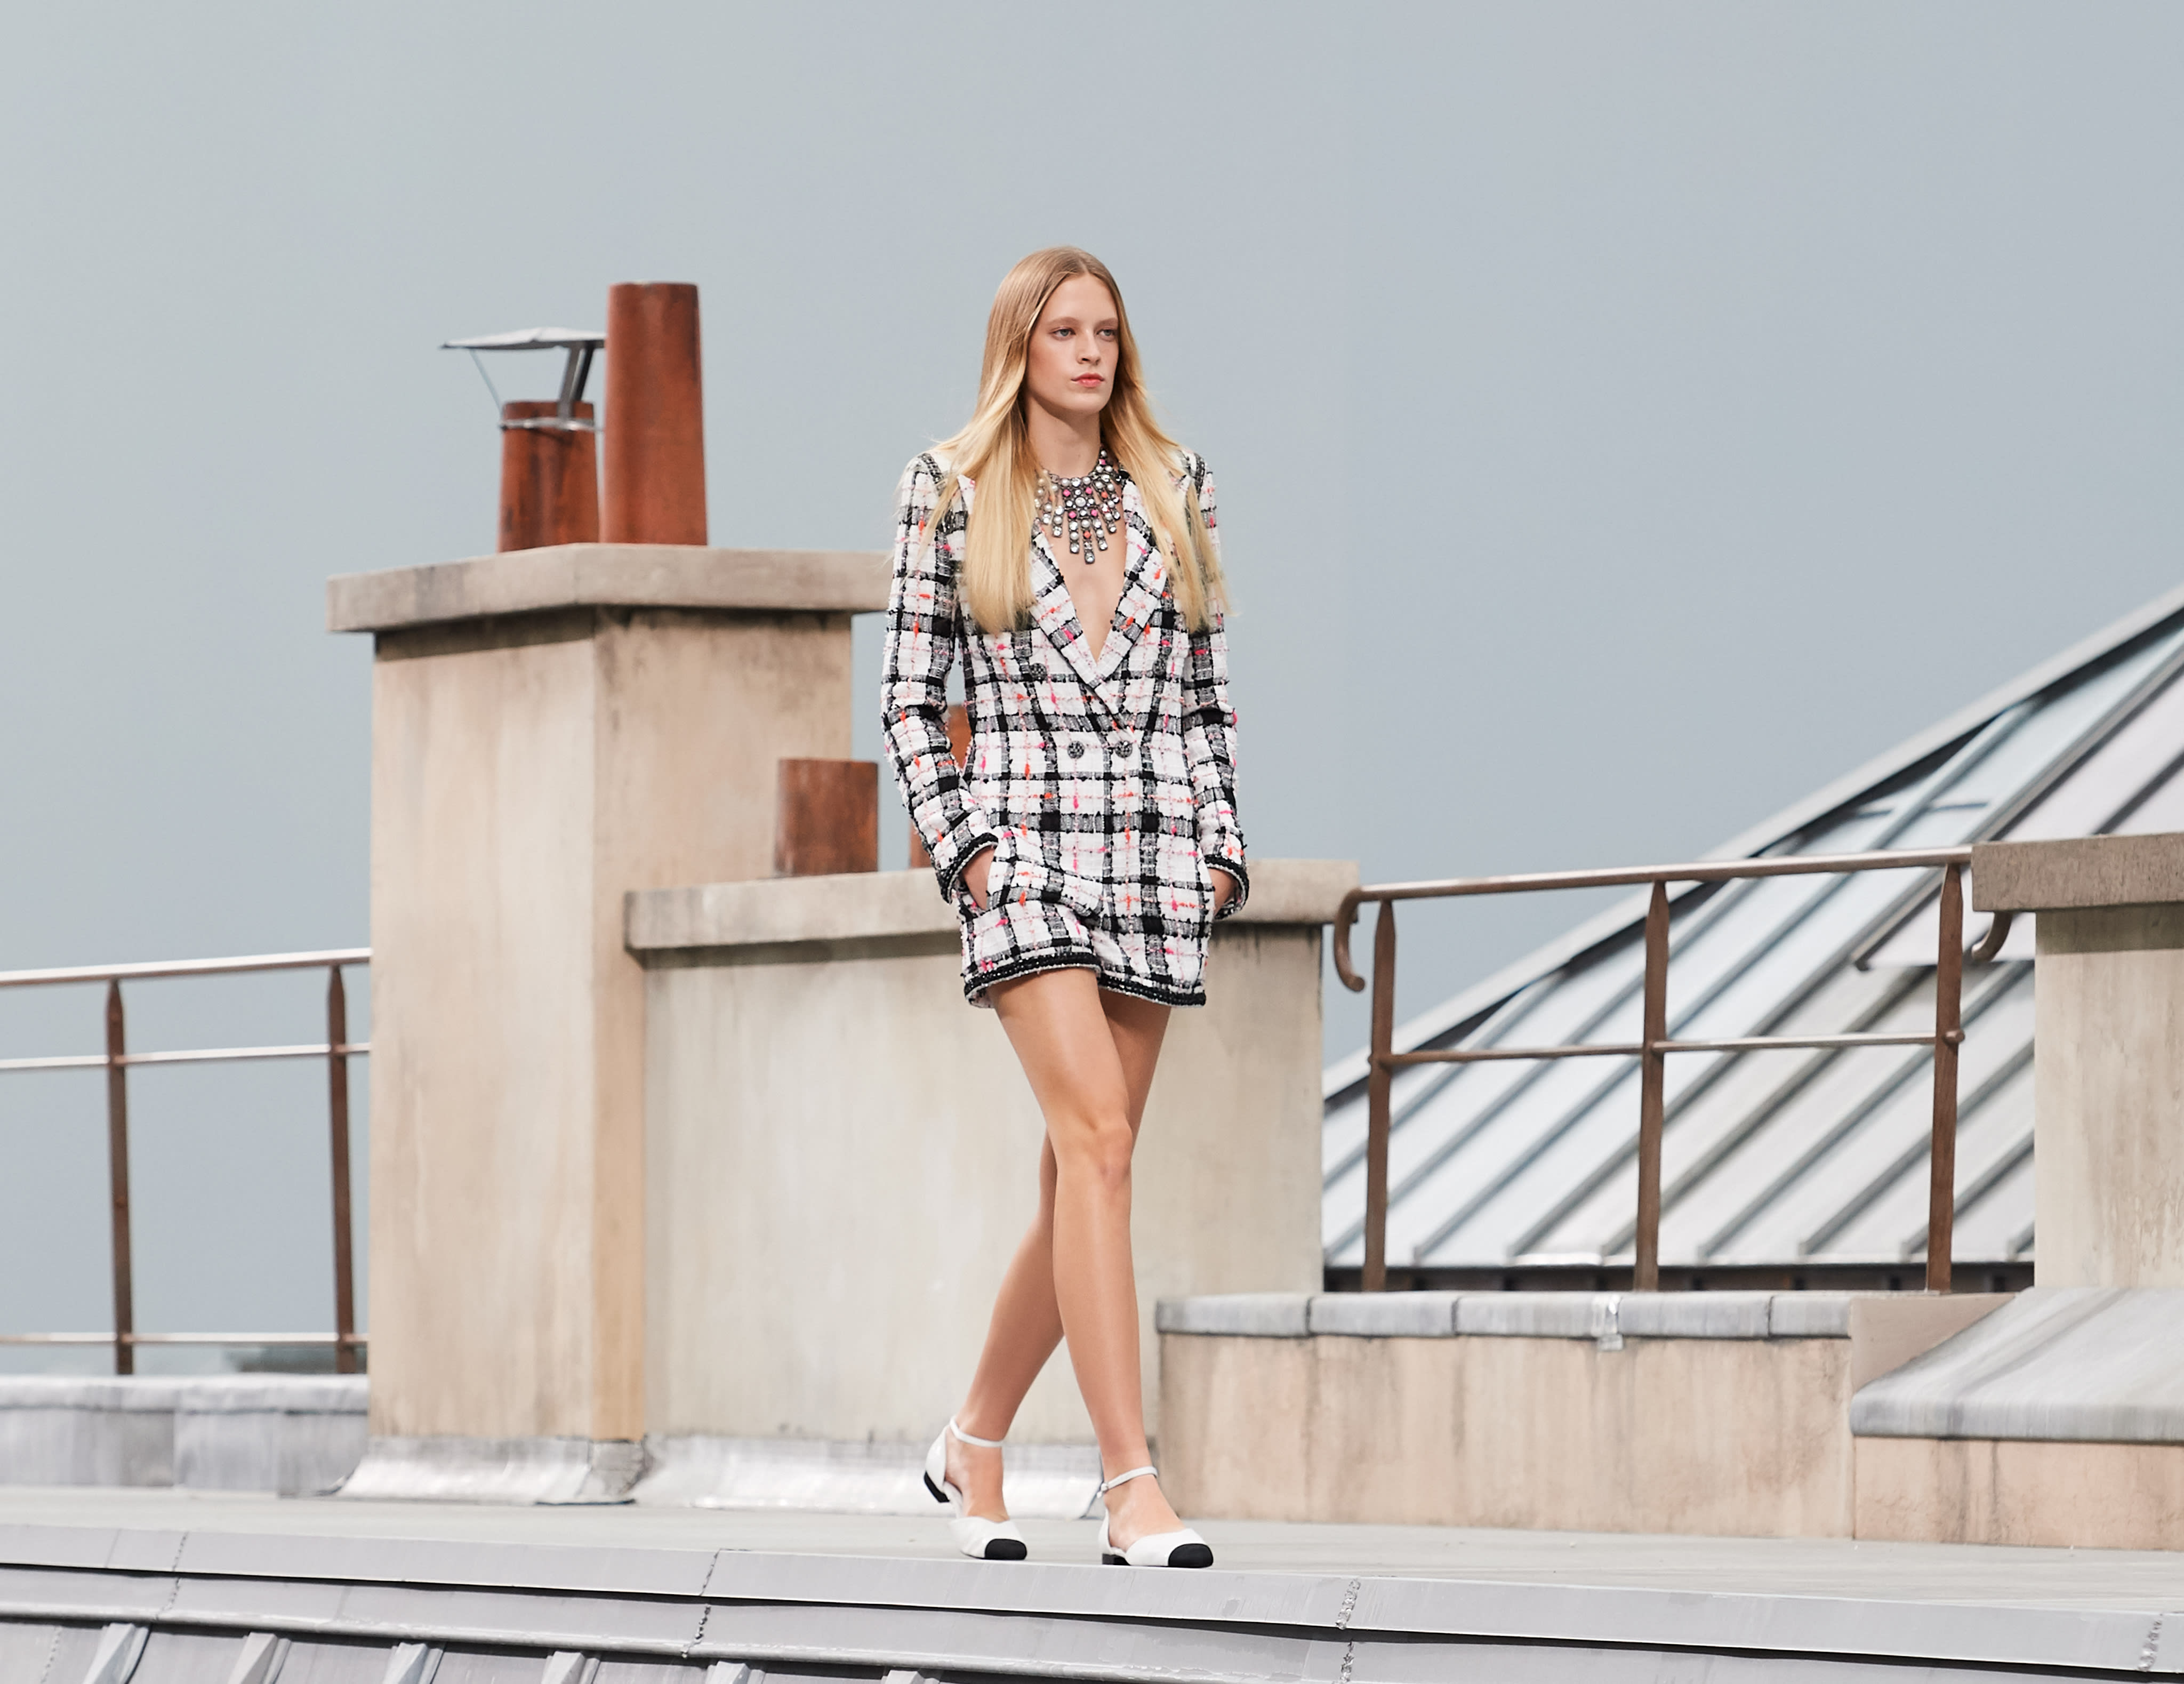 Chanel Summer 2020.Spring Summer 2020 Ready To Wear Look 7 Chanel